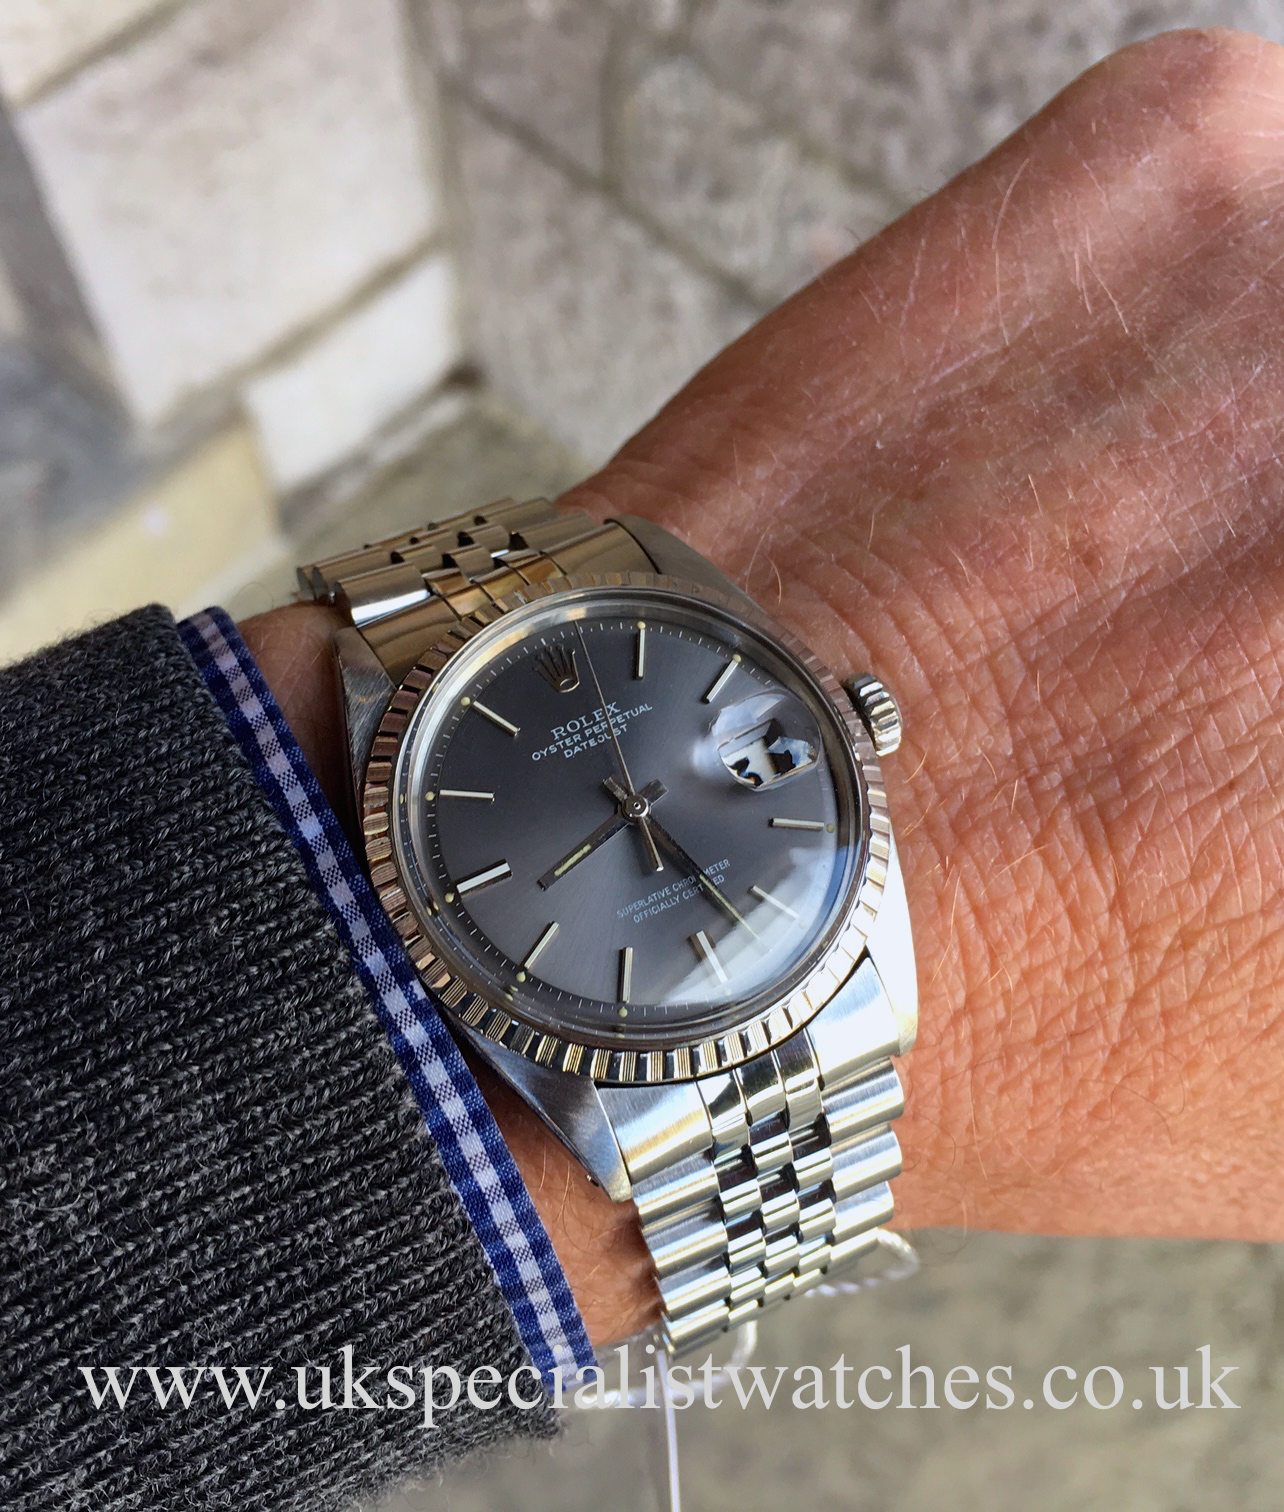 Rolex Datejust 1603 Pan Step Dial Stainless Steel Vintage 1970